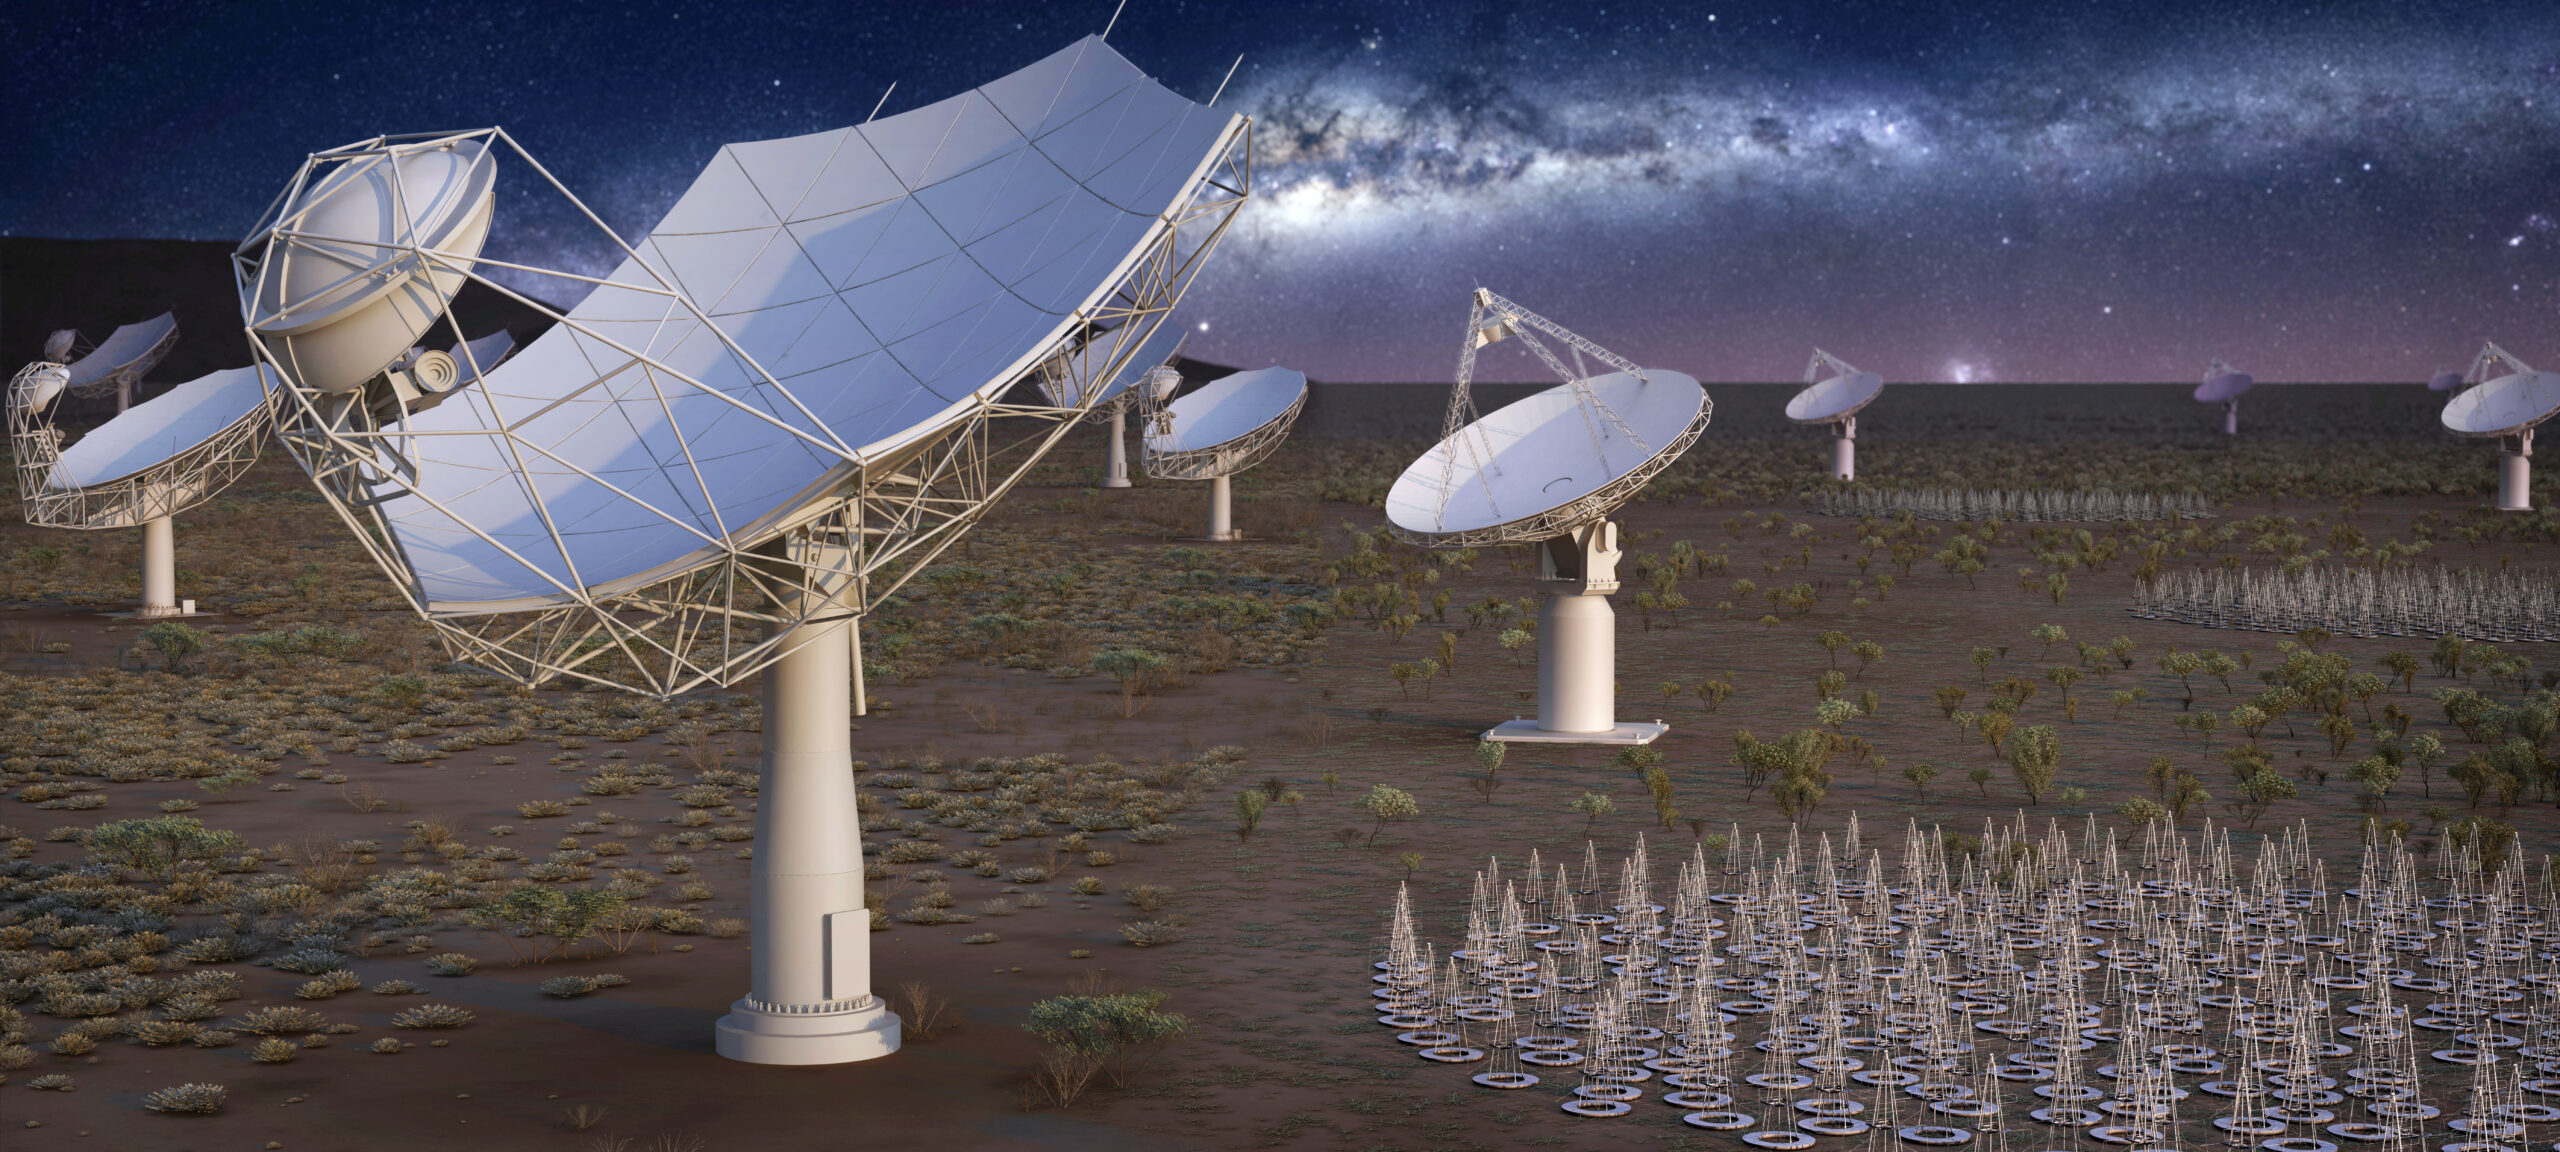 An artist's impression of SKA at night